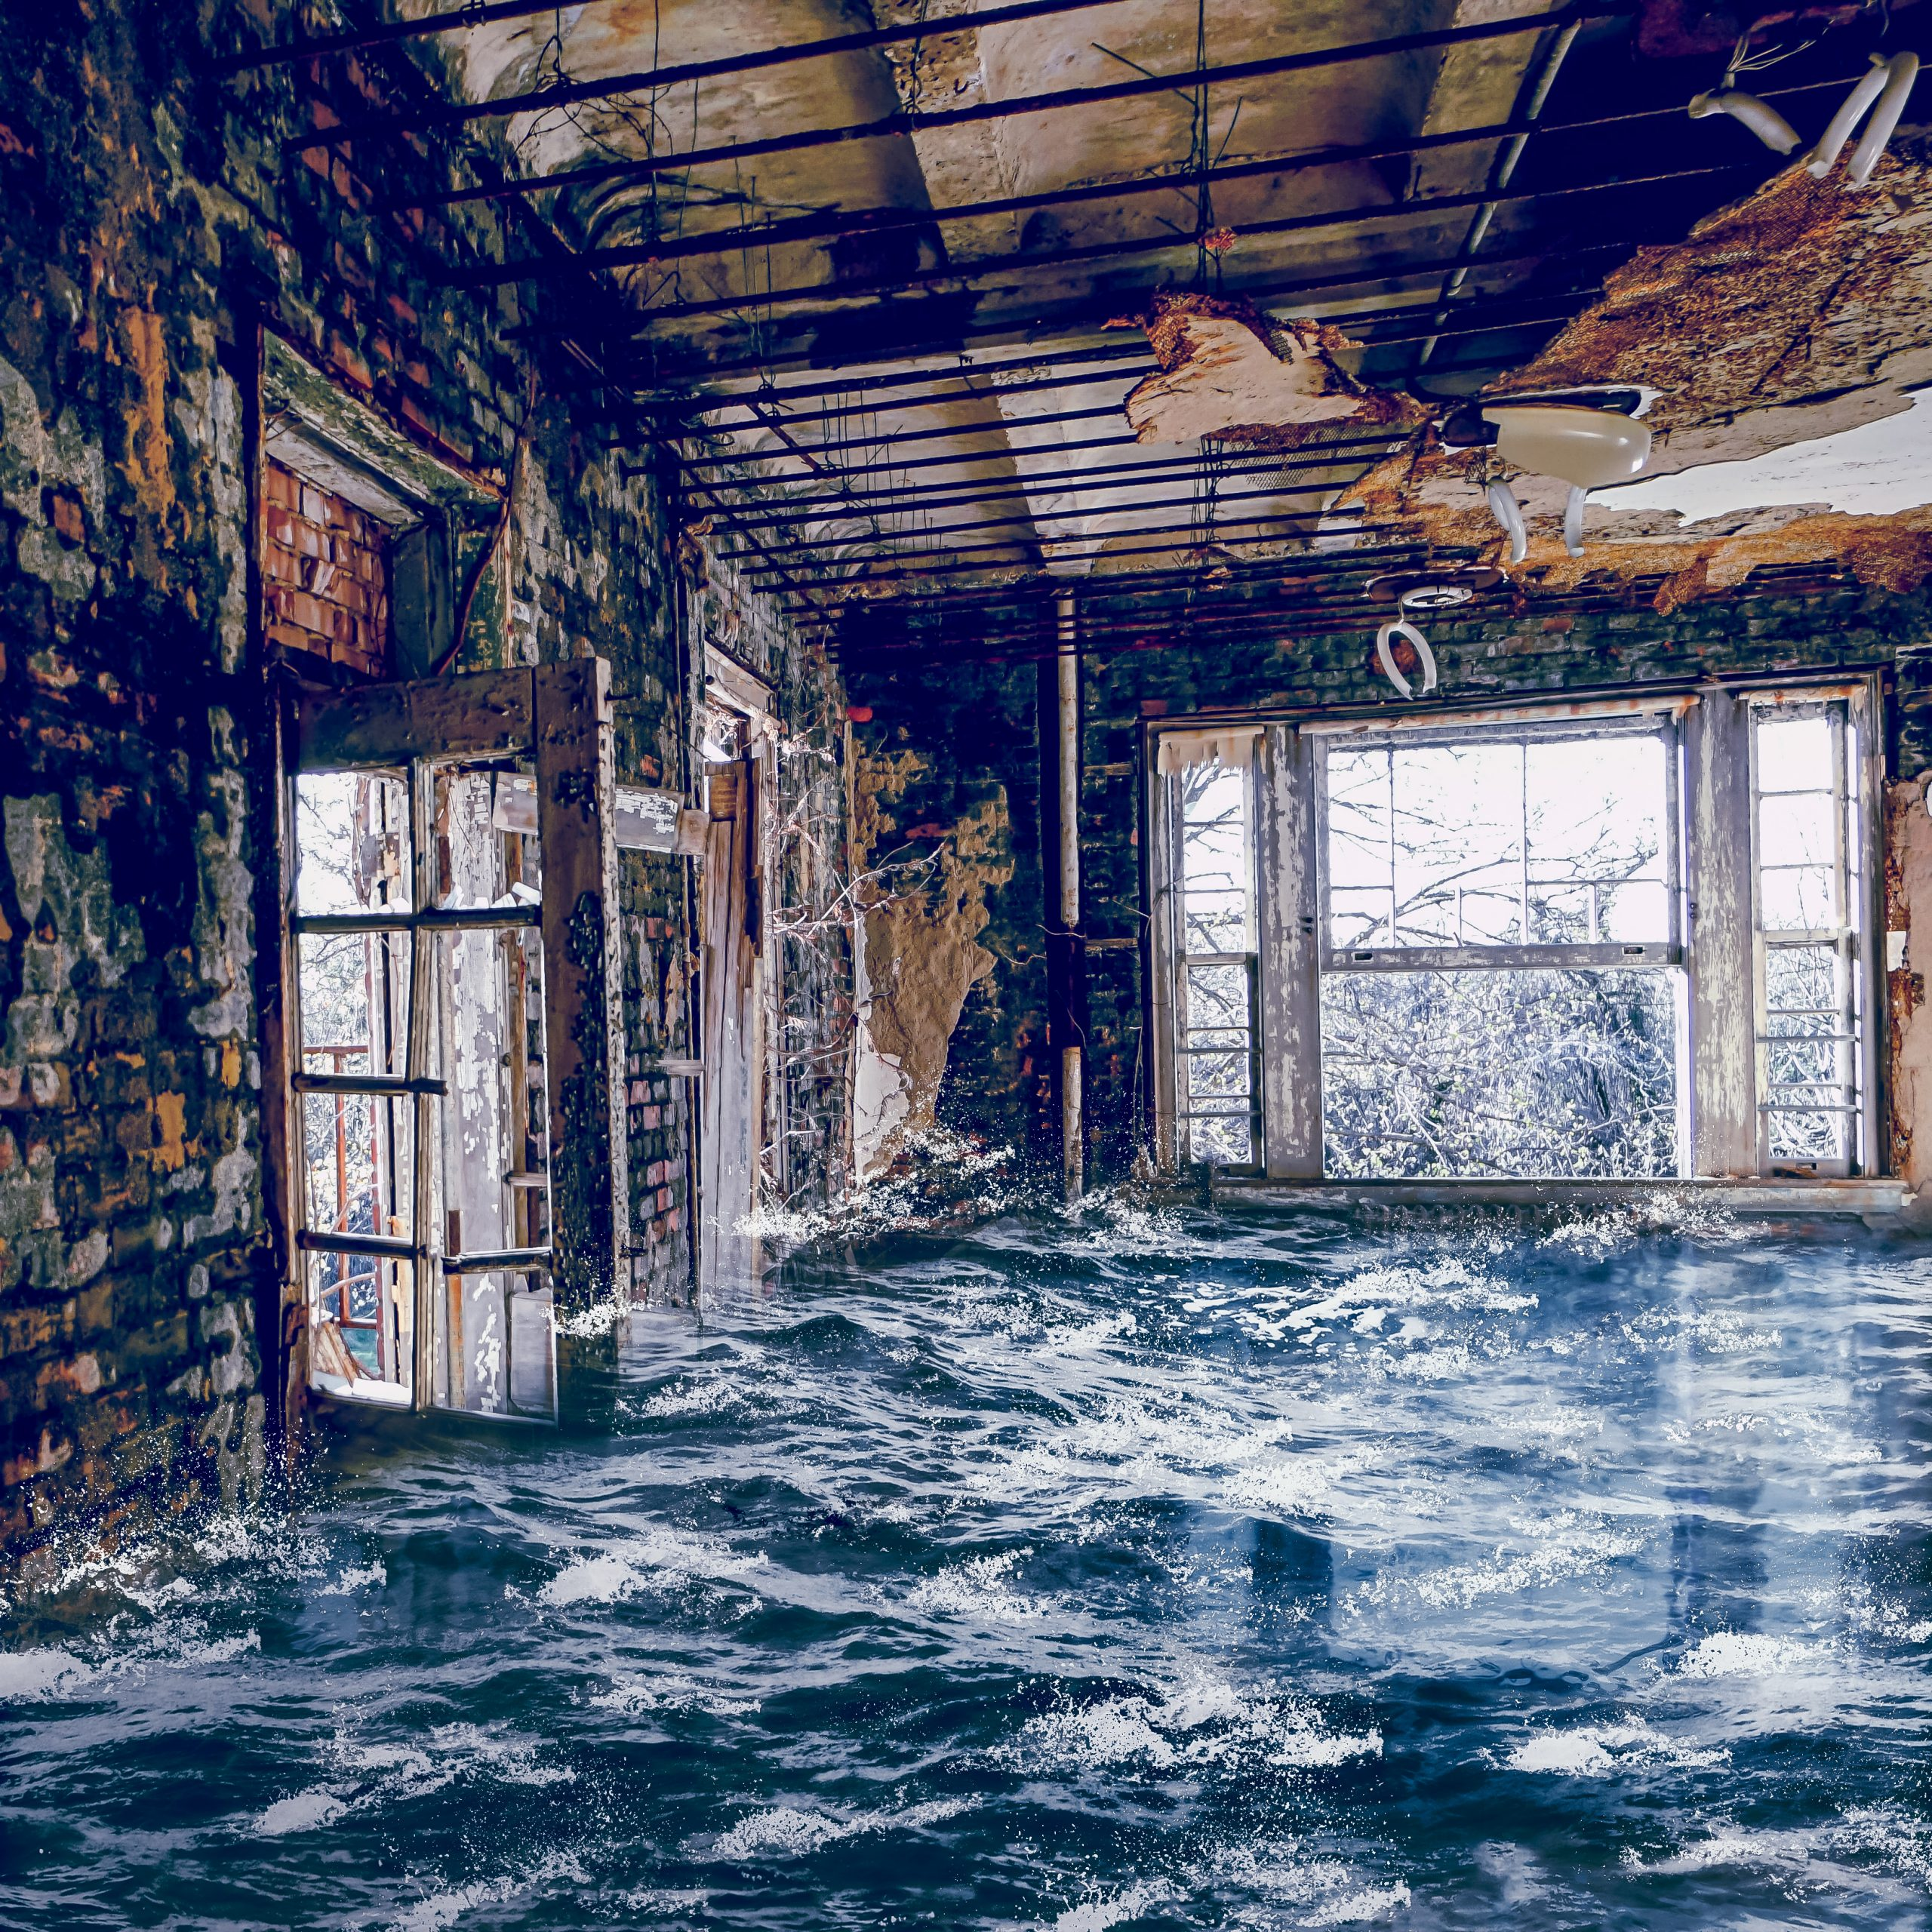 Flood in an old house